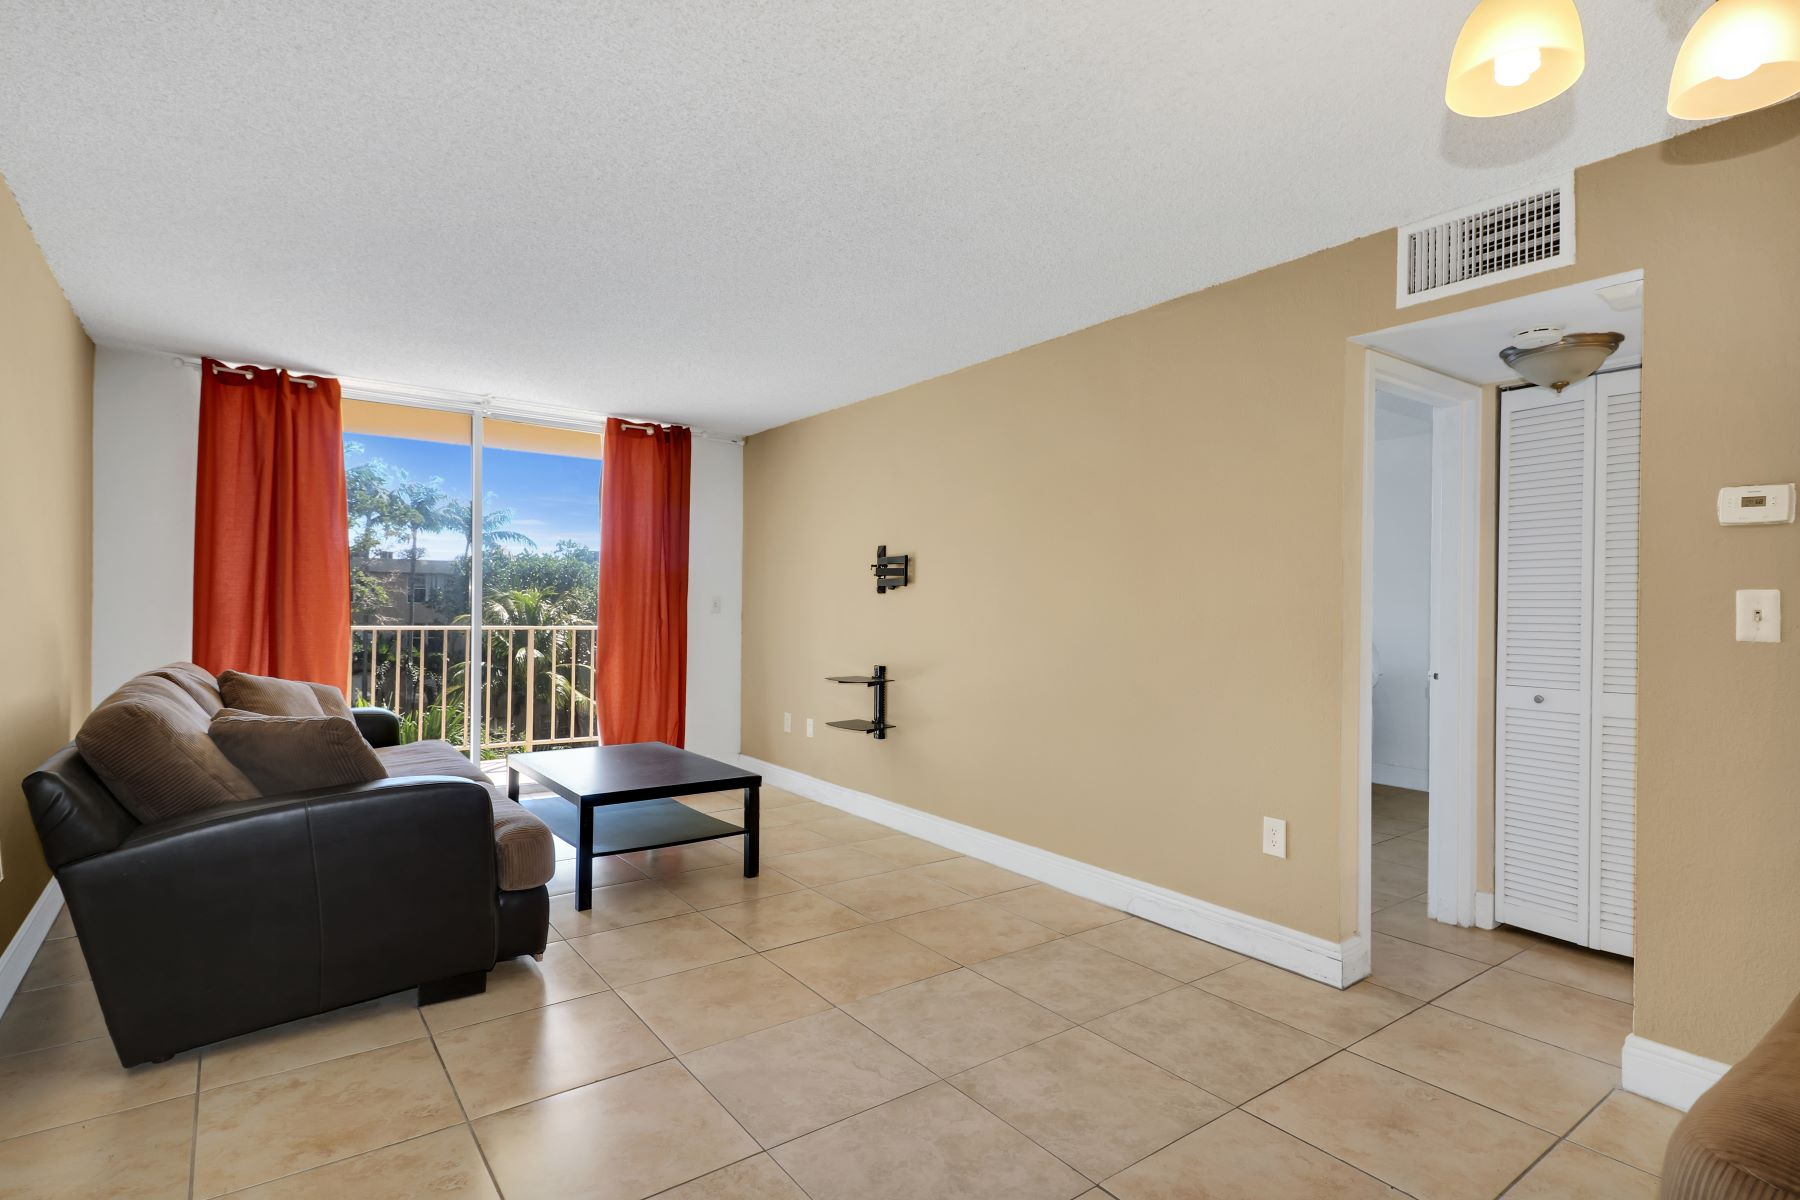 Single Family Homes for Sale at 1805 Sans Souci Blvd 415 North Miami, Florida 33181 United States